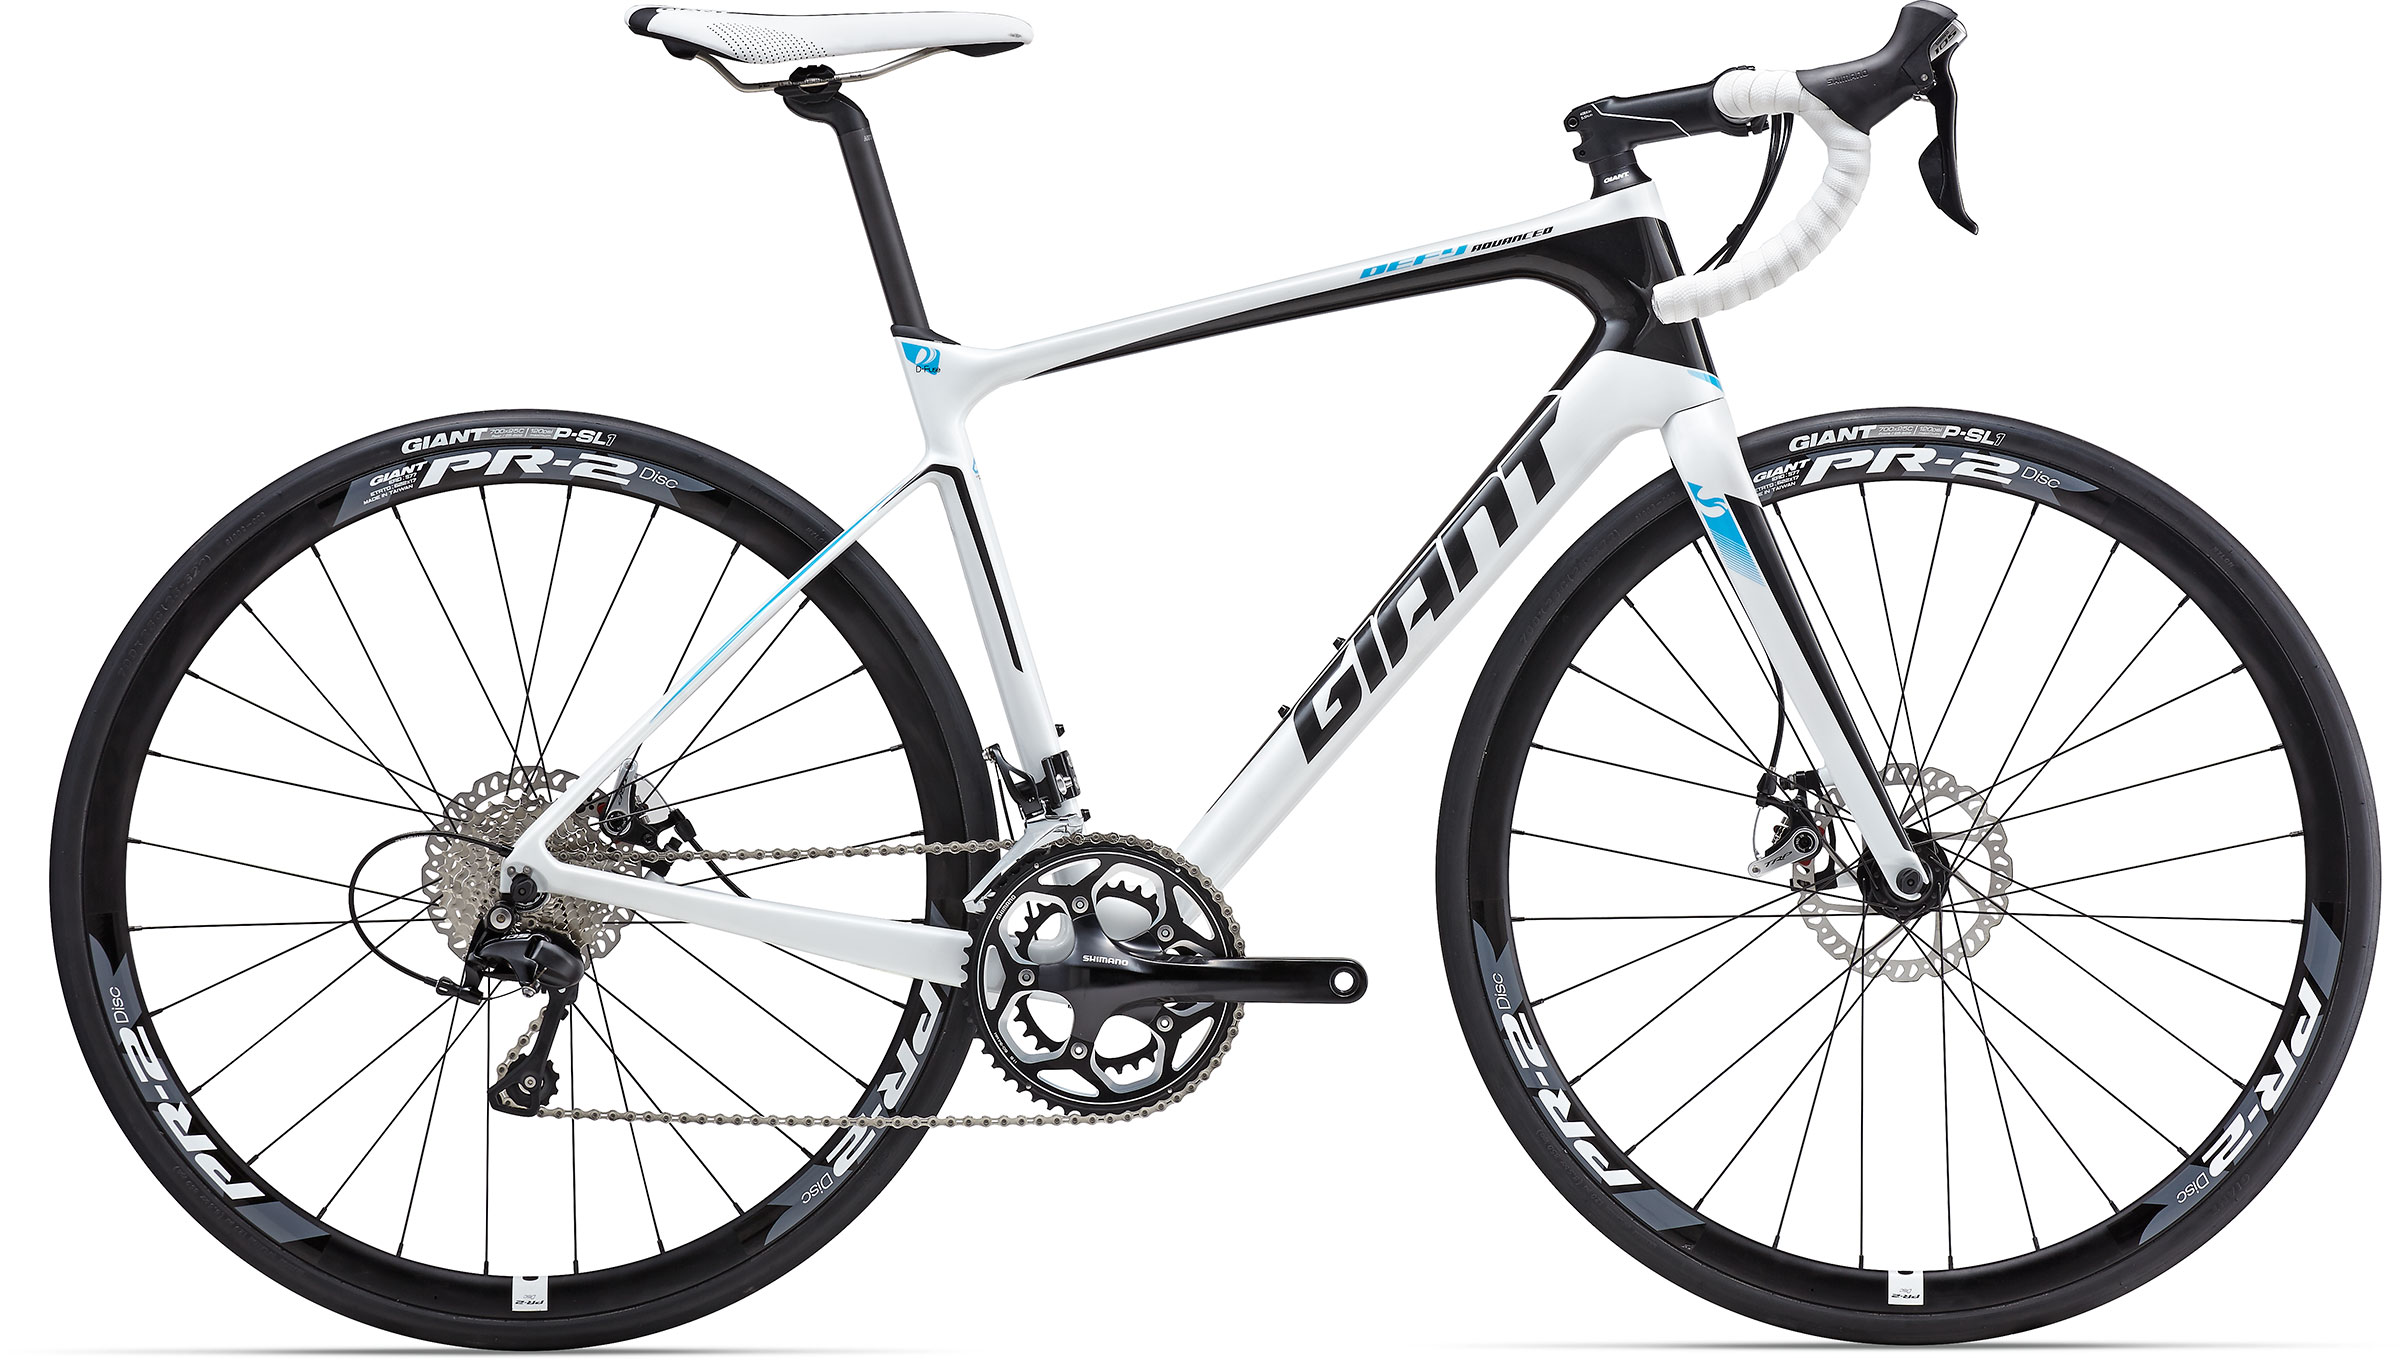 6b9334f3213 Giant Defy Advanced 2 -